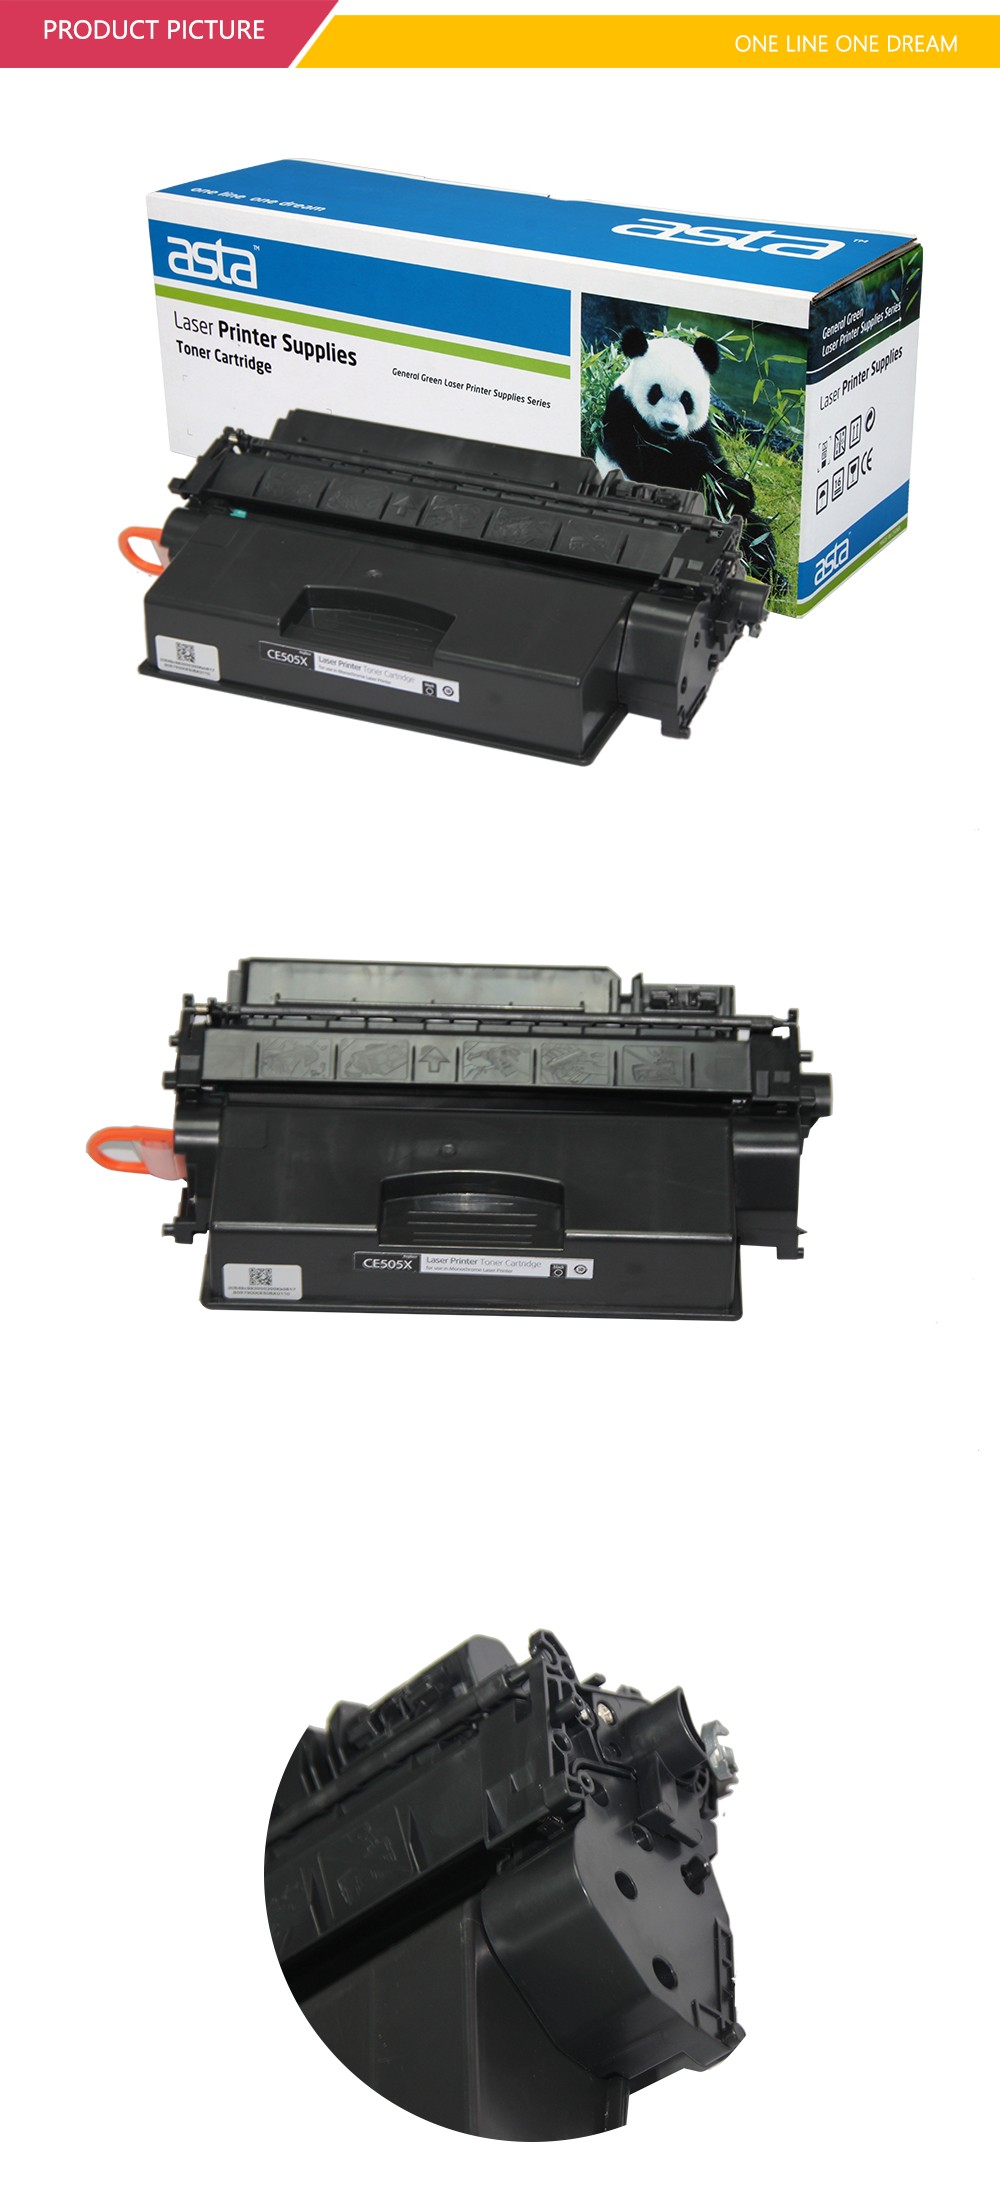 Printer Hp Laserjet P2055 Suppliers And Pick Up Roller Tray 1 P2035 M401 Manufacturers At